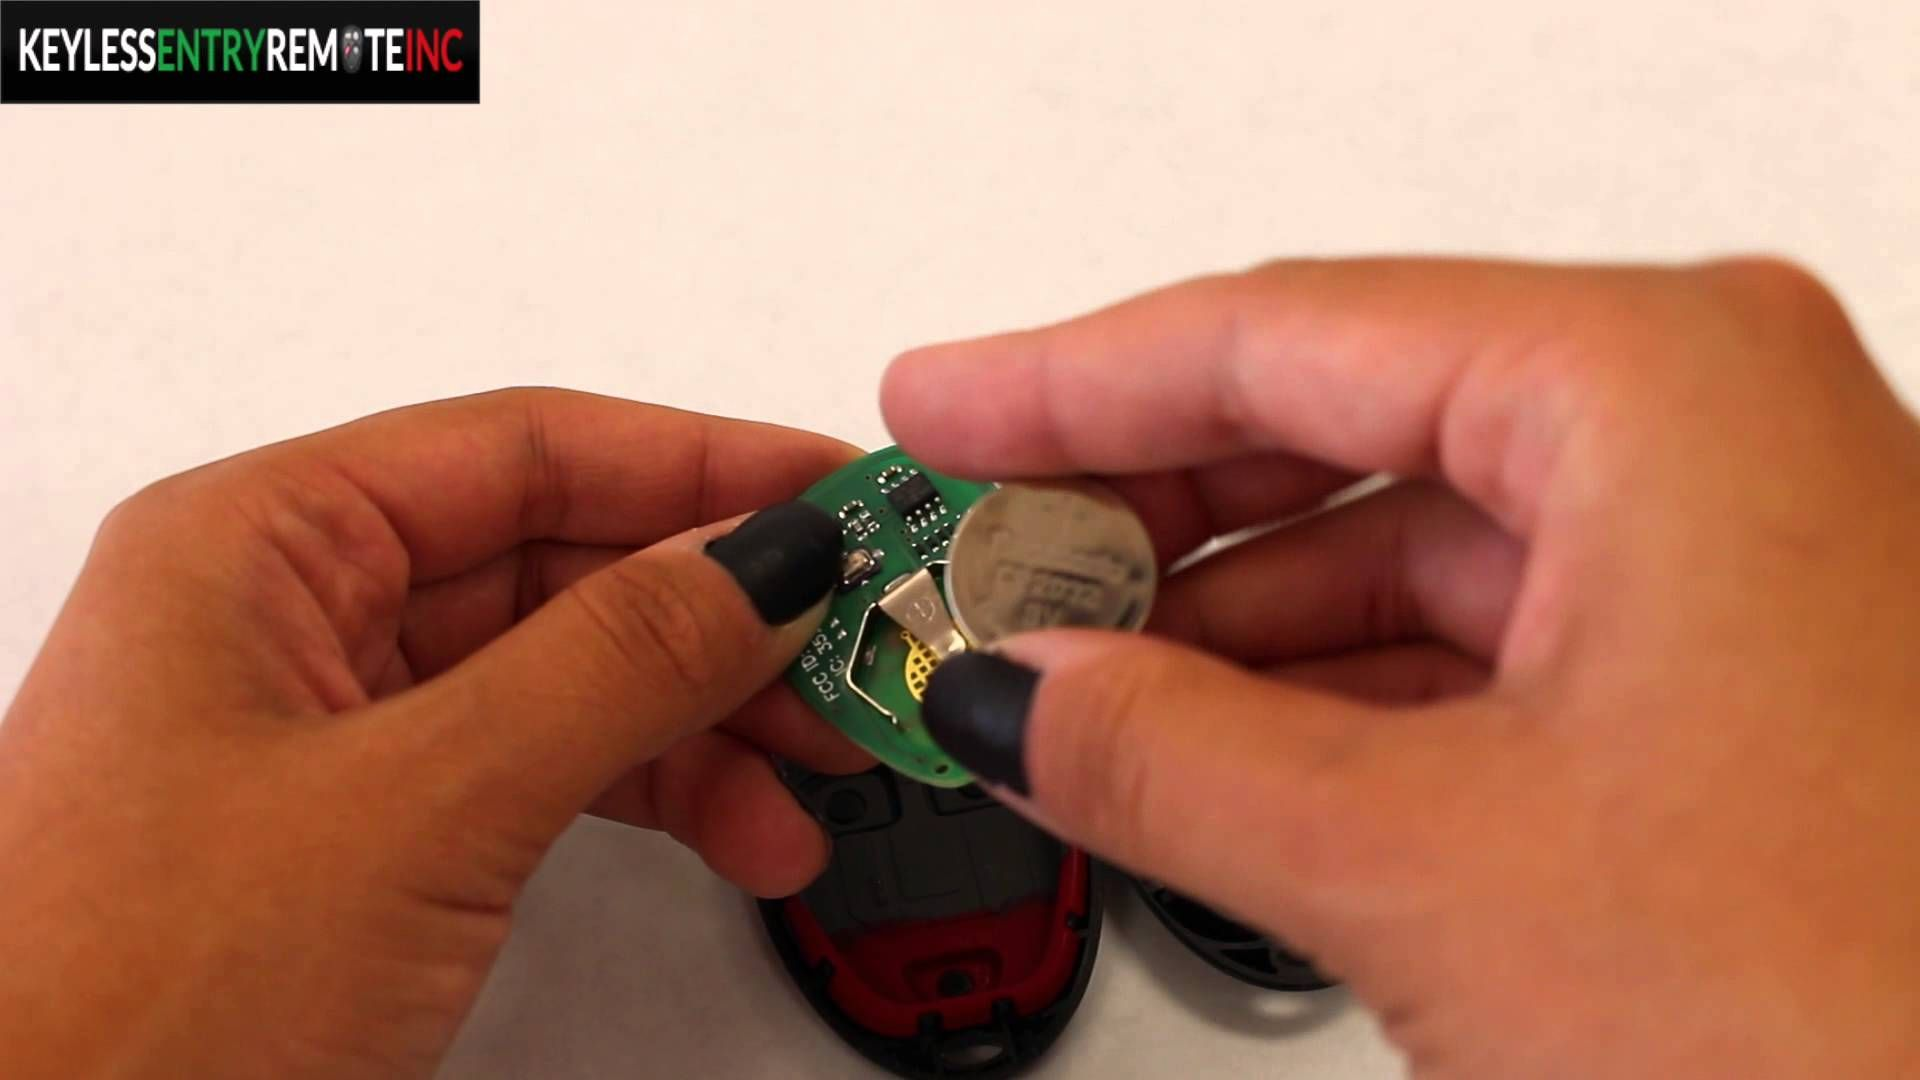 How To Replace Chevrolet Hhr Key Fob Battery 2008 2011 Key Fob